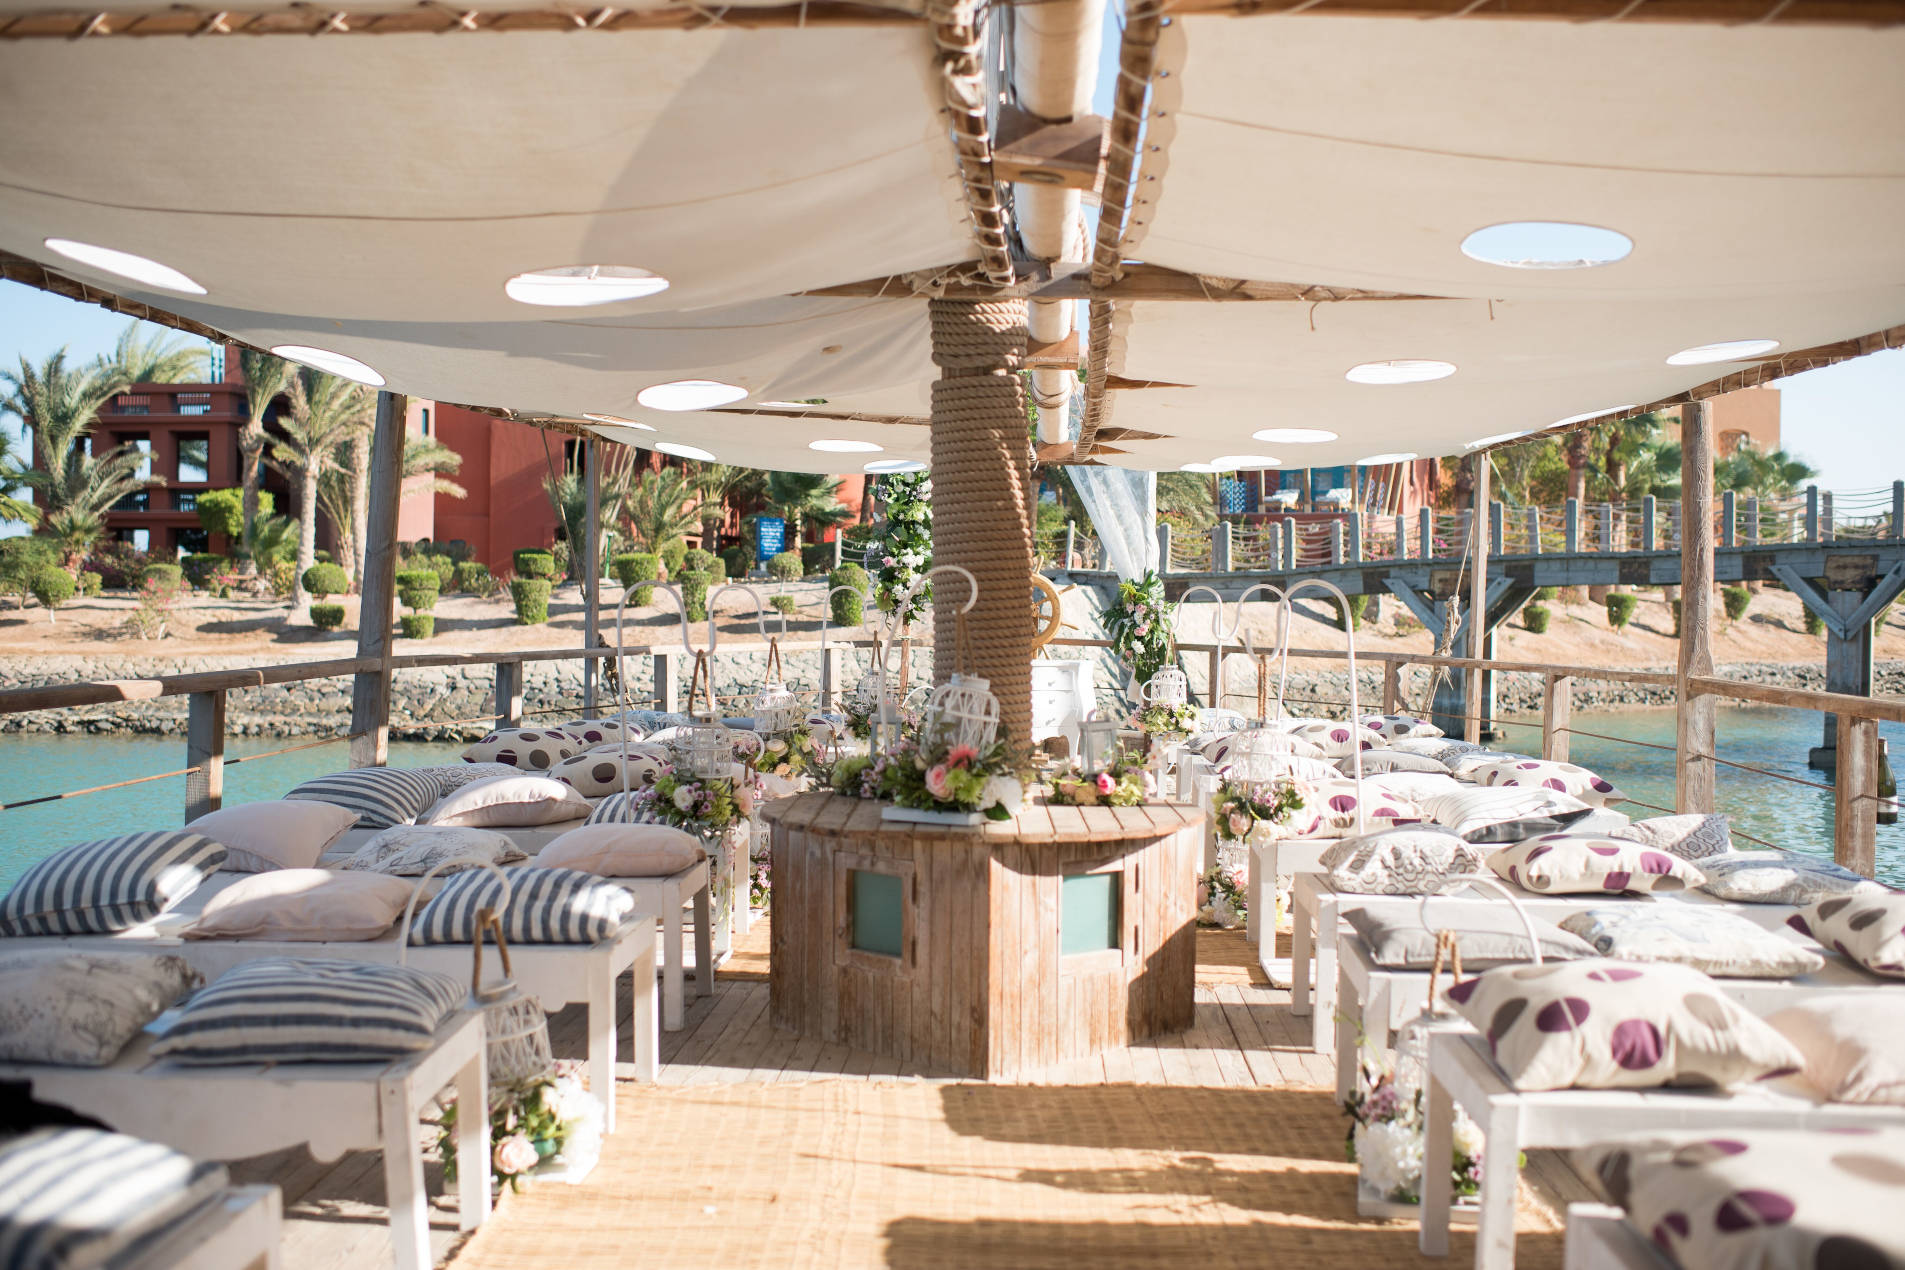 Wedding Decorations in Sheraton Miramar Resort El Gouna wine boat surrounded by lagoon waters of Red Sea